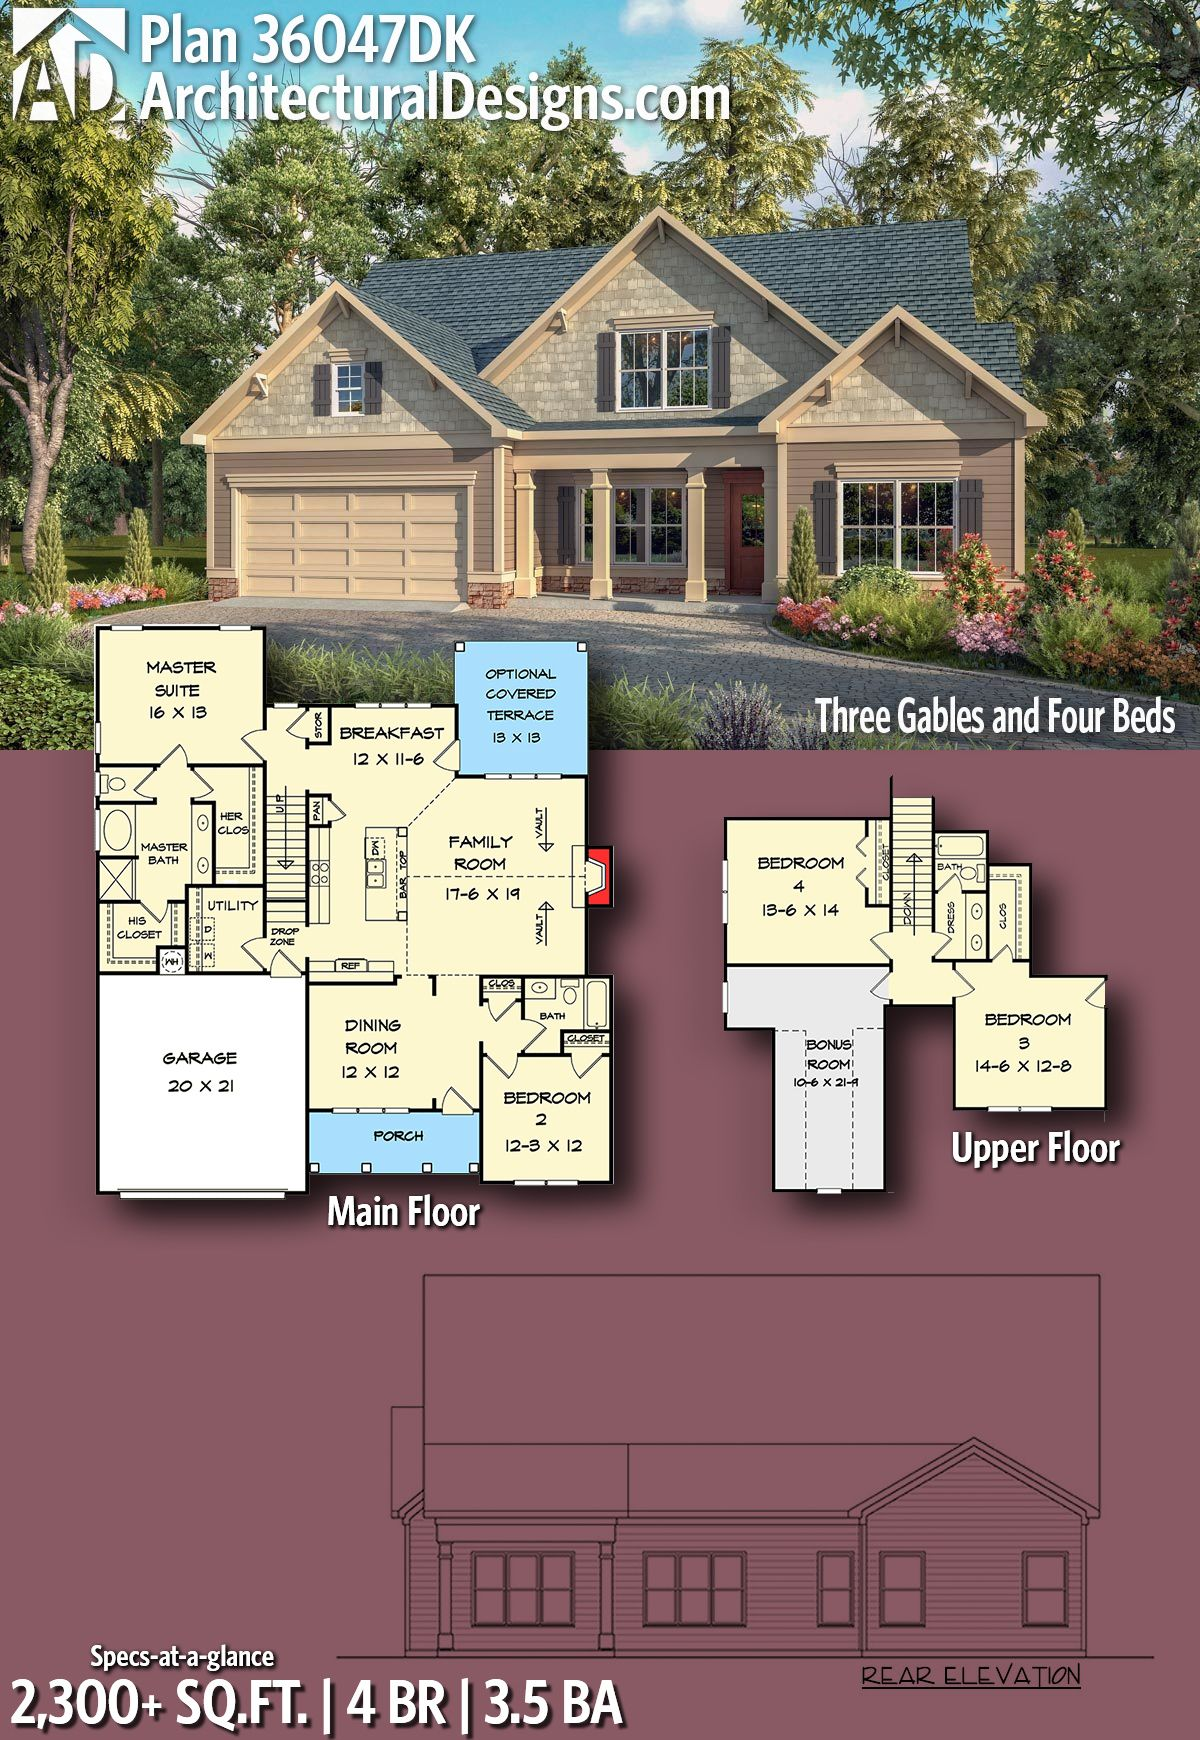 Architectural designs craftsman house plan dk br ba sq also three gables and four beds in plans mimari rh tr pinterest